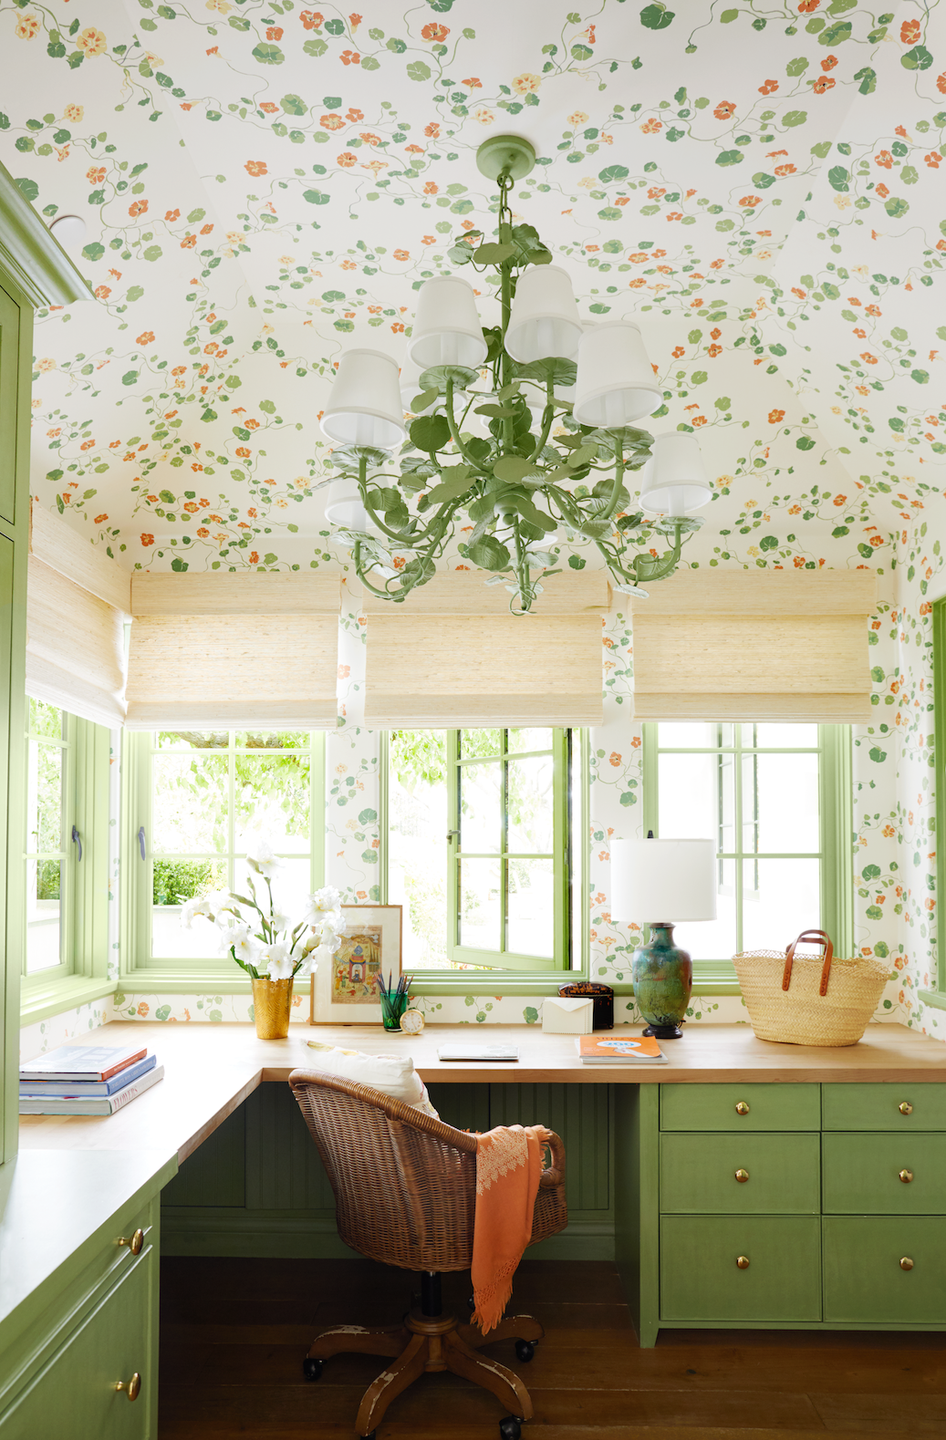 "<p>Of course your home office needs wallpaper on the ceiling. Designer Peter Dunham took this small upstairs room in a guest house in a <a href=""https://www.veranda.com/home-decorators/a30735967/peter-dunham-california-house-tour/"" rel=""nofollow noopener"" target=""_blank"" data-ylk=""slk:Southern California home"" class=""link rapid-noclick-resp"">Southern California home</a> and transformed it to an efficient and exciting space thanks to a built-in workspace with backyard views, nasturtium-themed wallpaper from Lake August and a sage-green Bonhams chandelier that ties the space together. </p>"